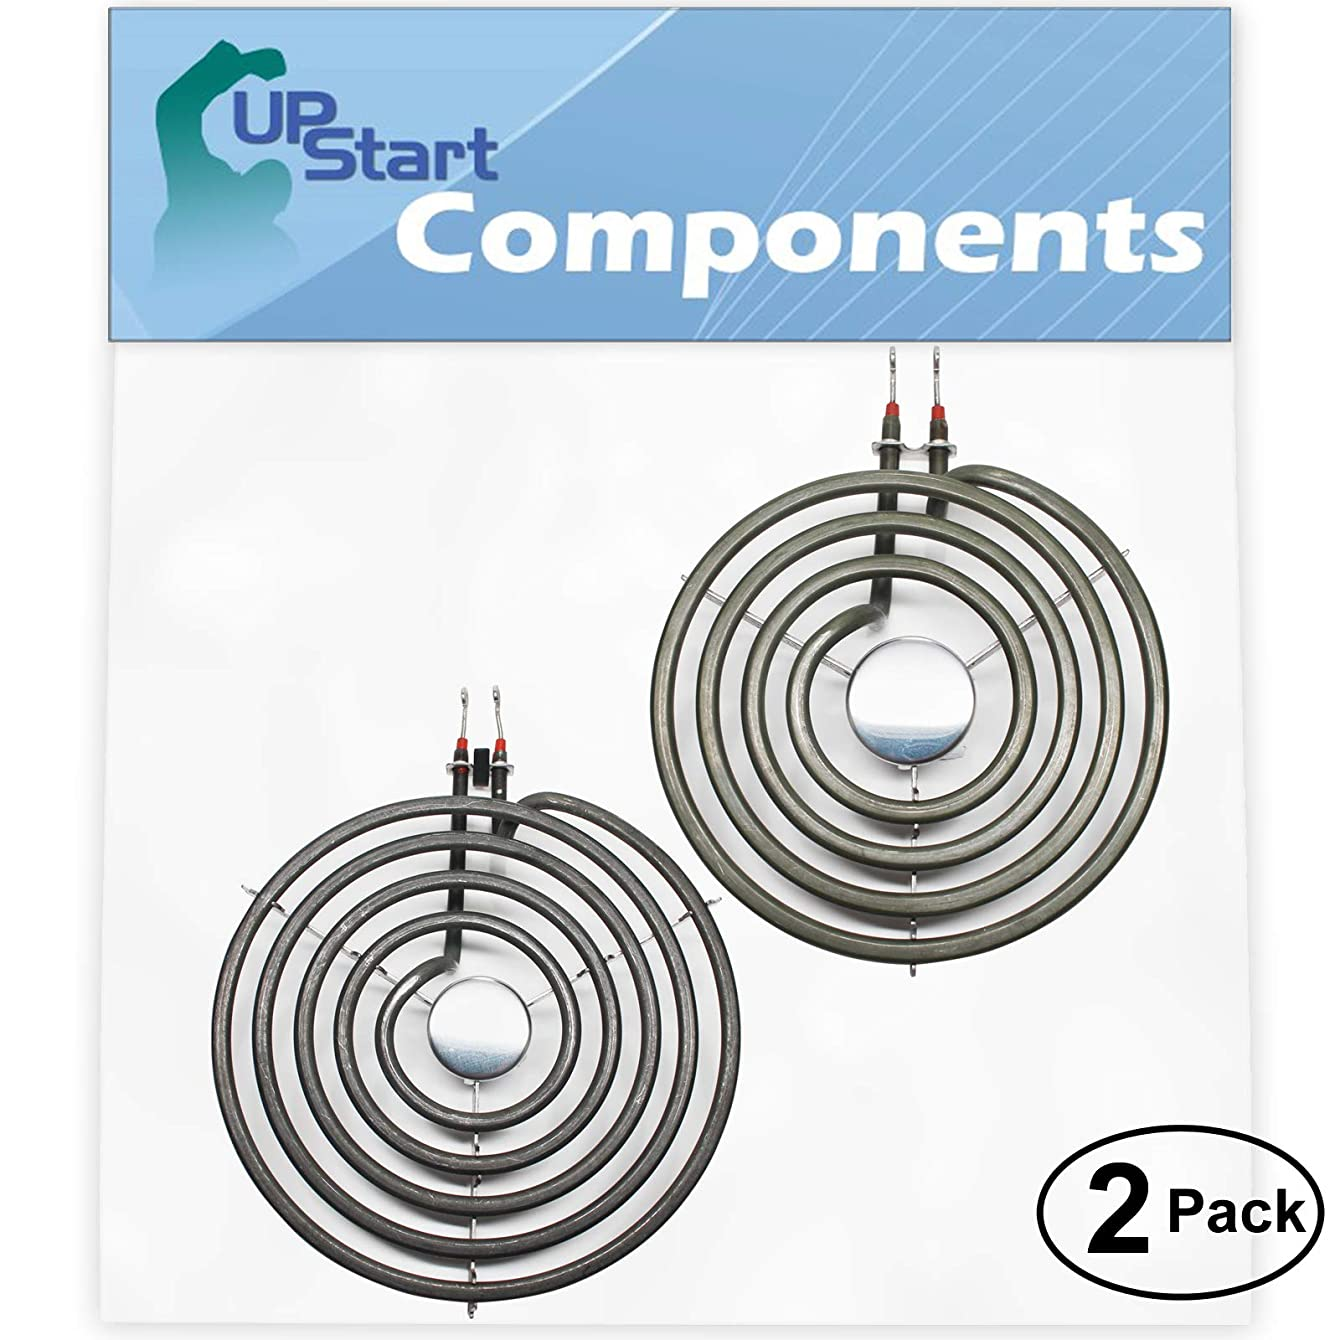 2-Pack Replacement Whirlpool IME31301 8 inch 5 Turns & 6 inch 4 Turns Surface Burner Elements - Compatible Whirlpool 9761345 & 660532 Heating Element for Range, Stove & Cooktop